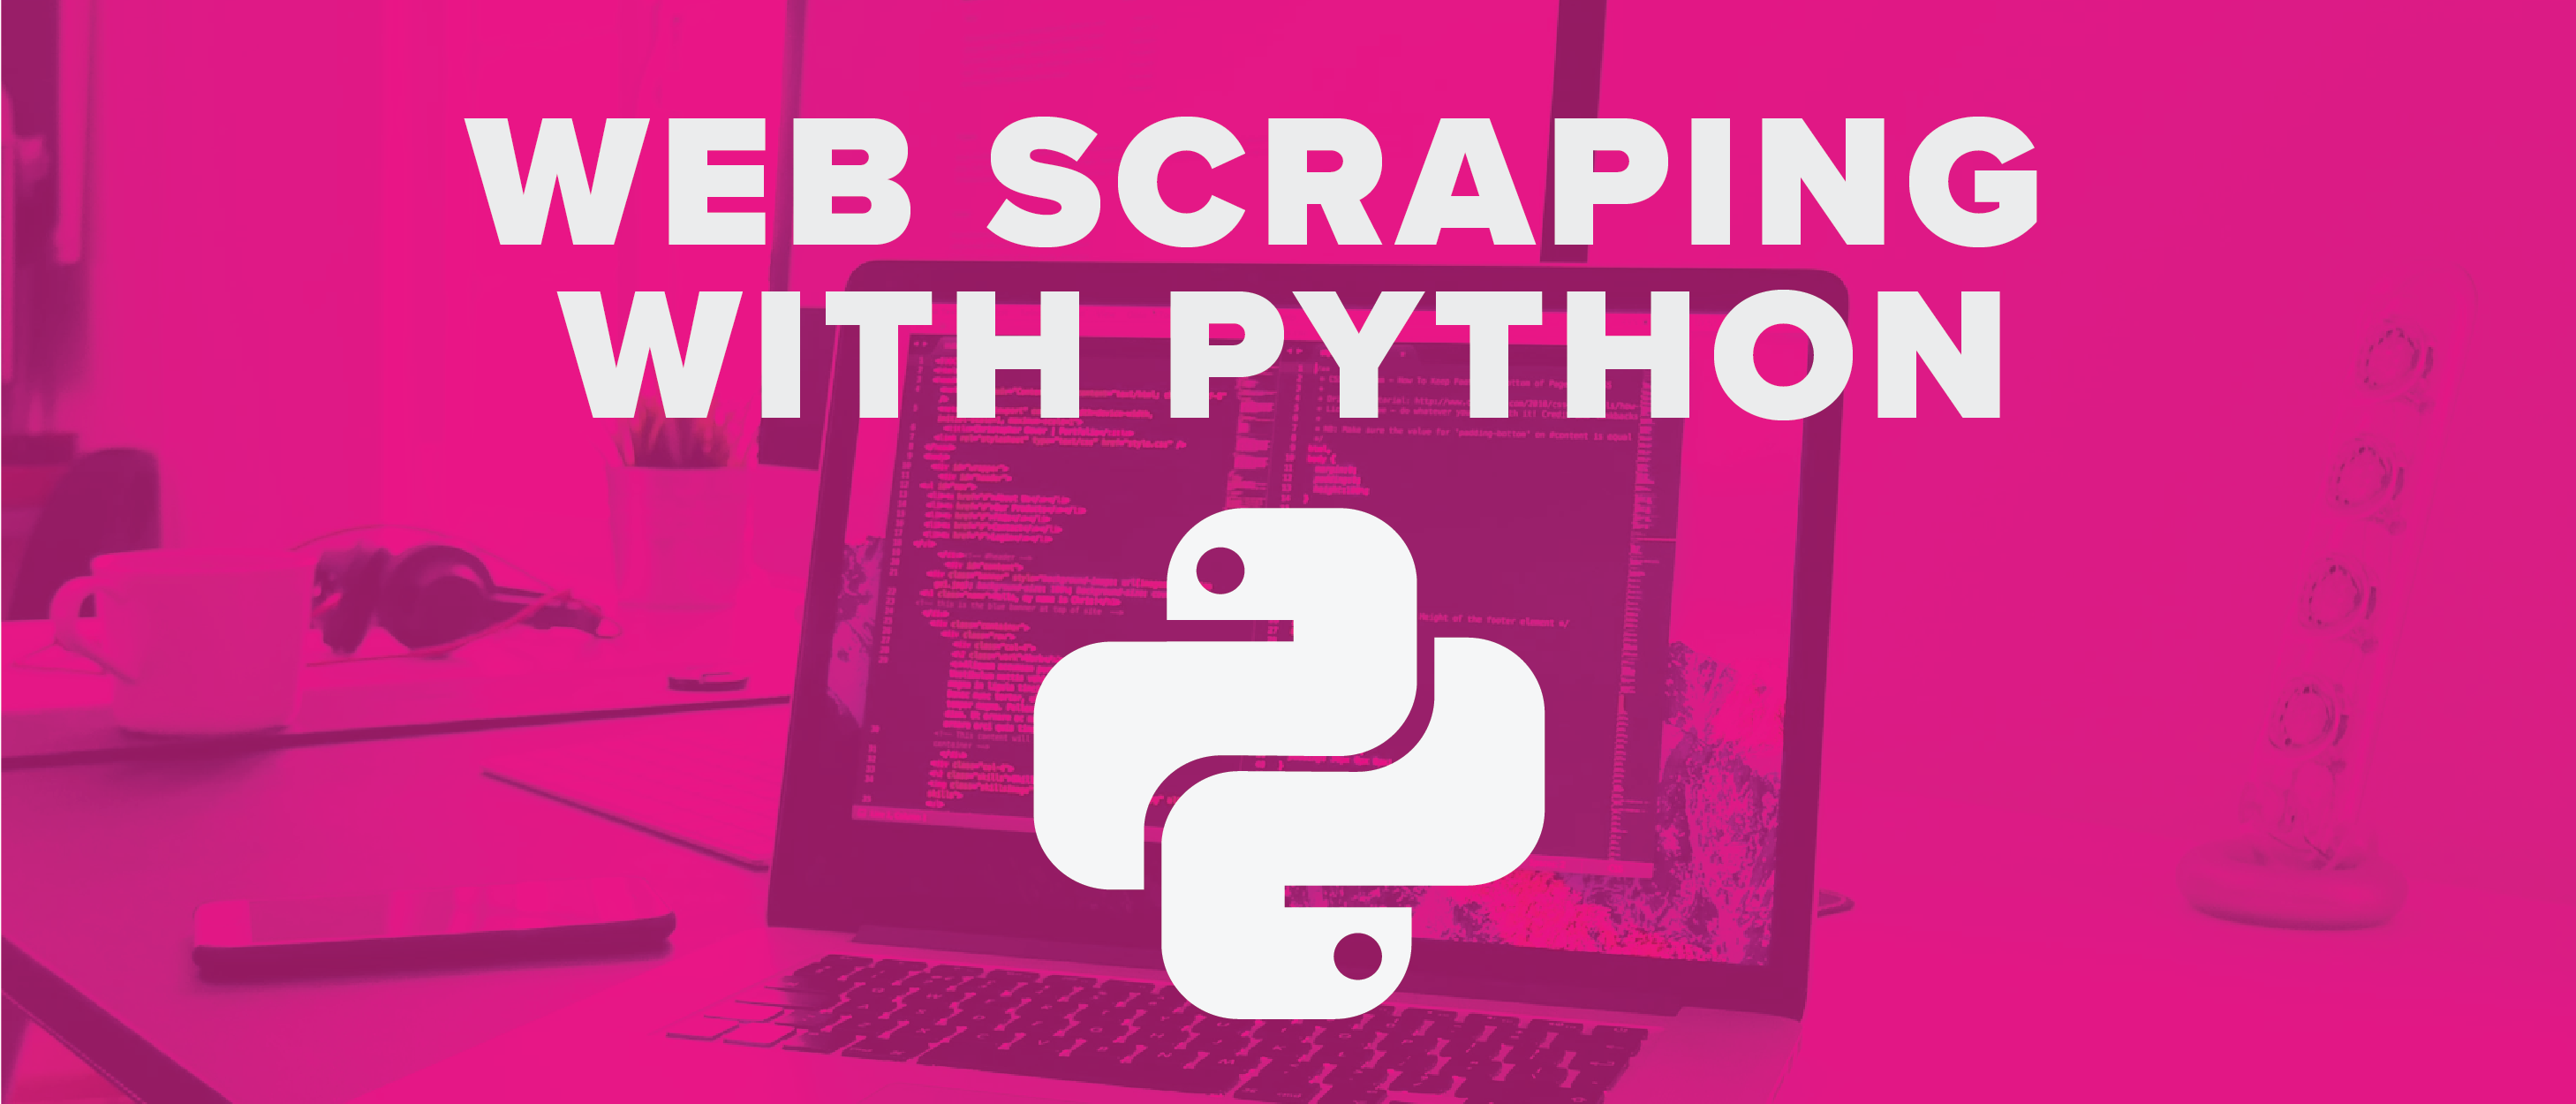 Python Web Scraping: How To | Pluralsight | Pluralsight